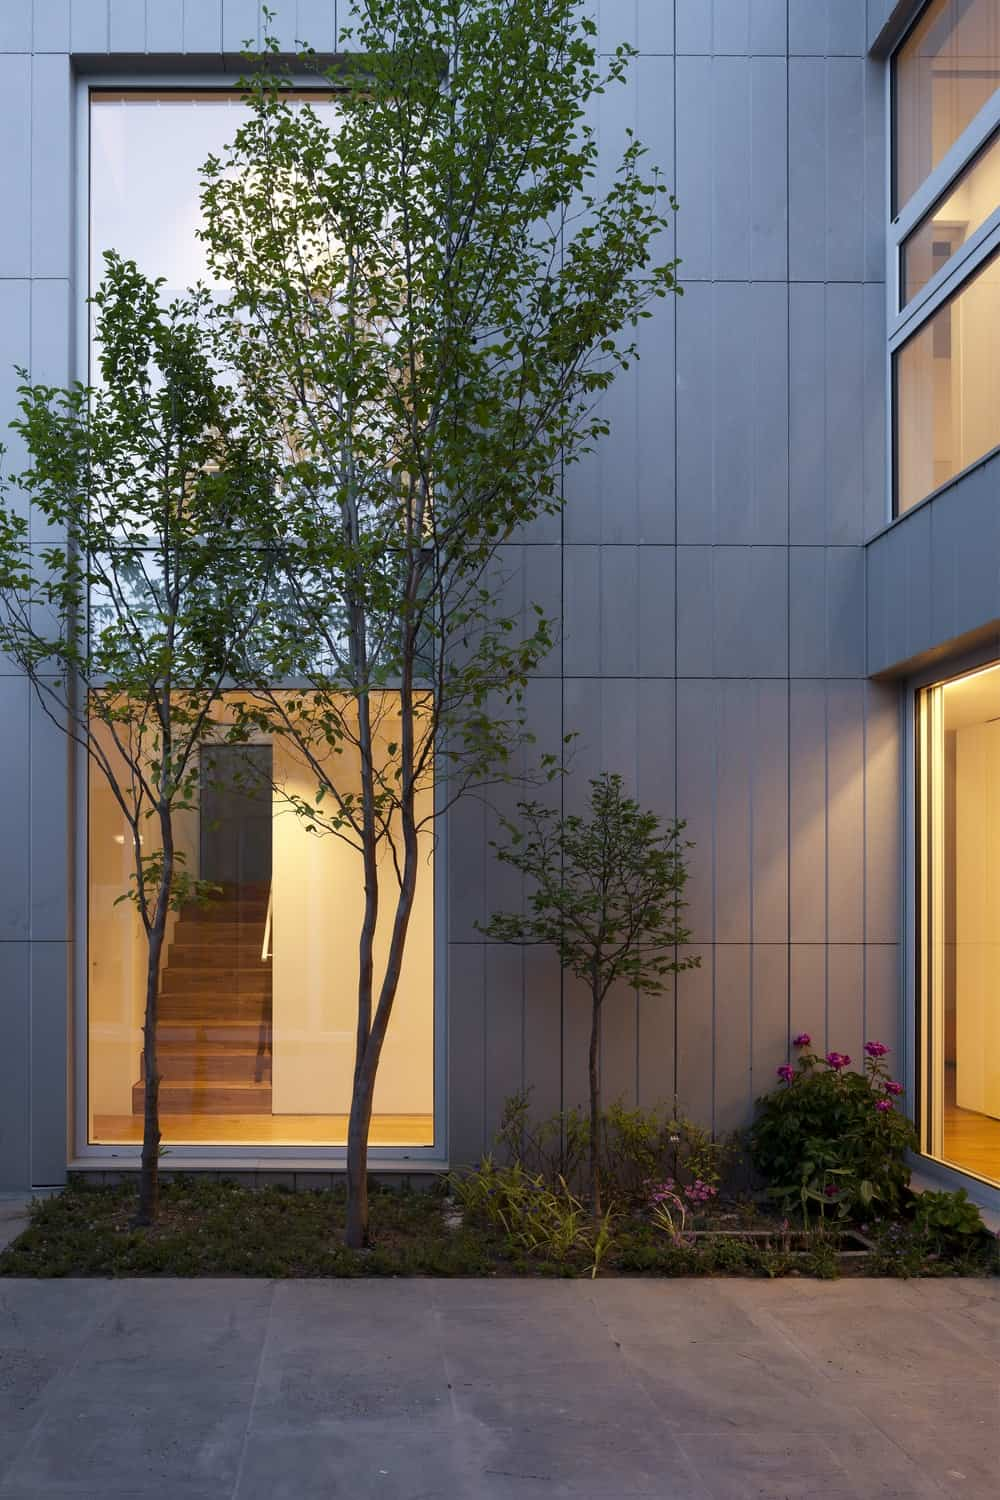 This is a close look at the side of the house with glass walls and a small garden with flowering shrubs and trees.